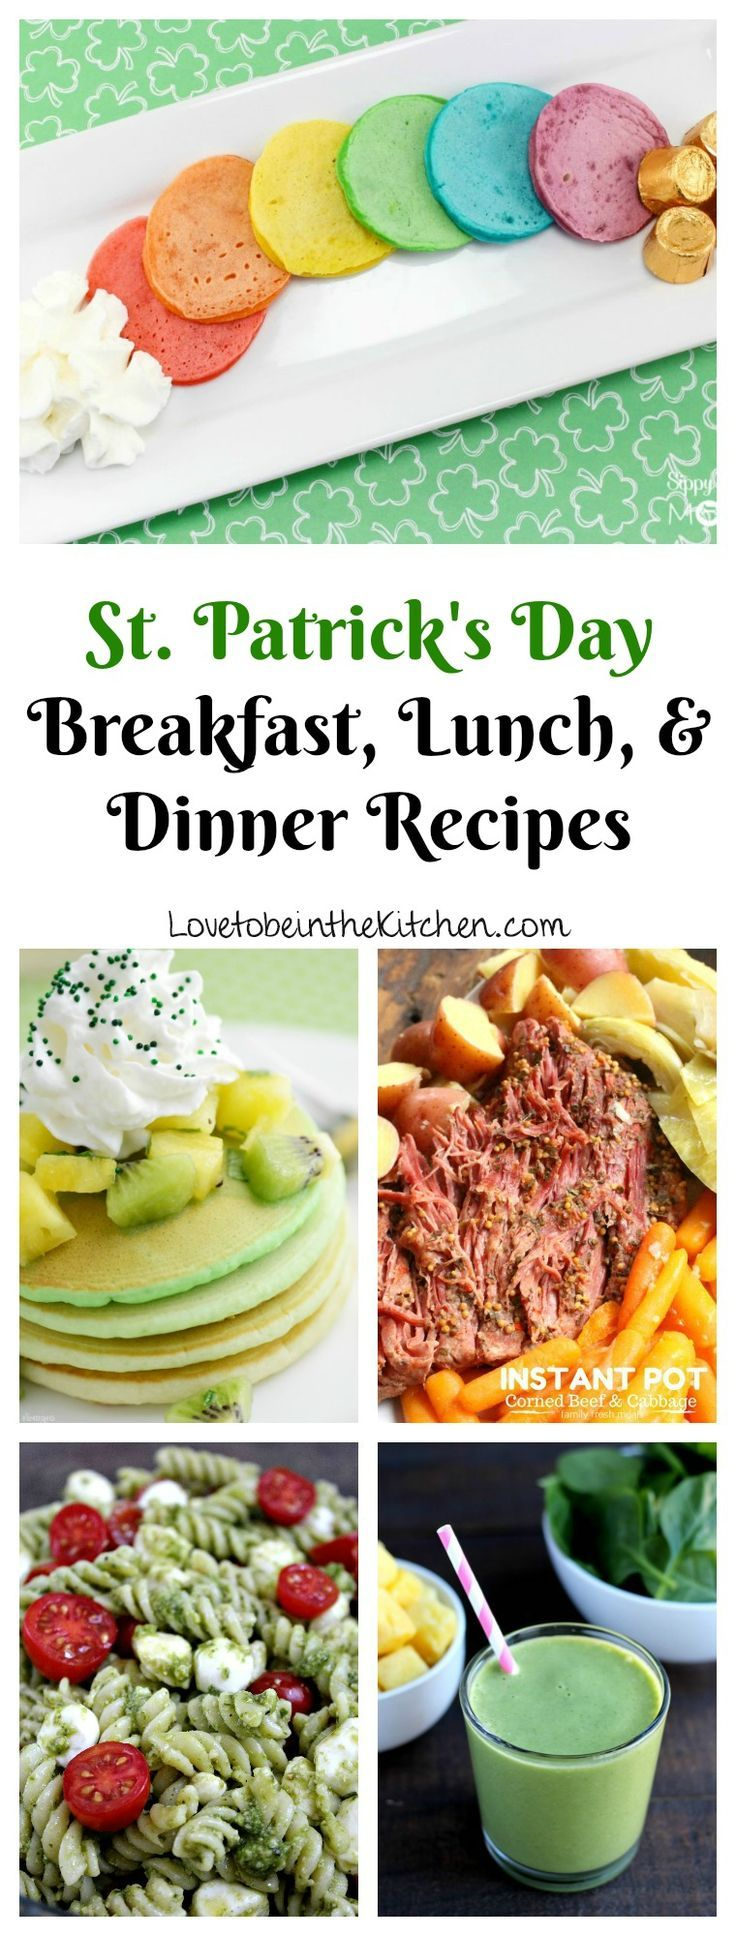 Ploughman's lunch | Food | Pinterest | Irish recipes ... |Irish Luncheon Ideas